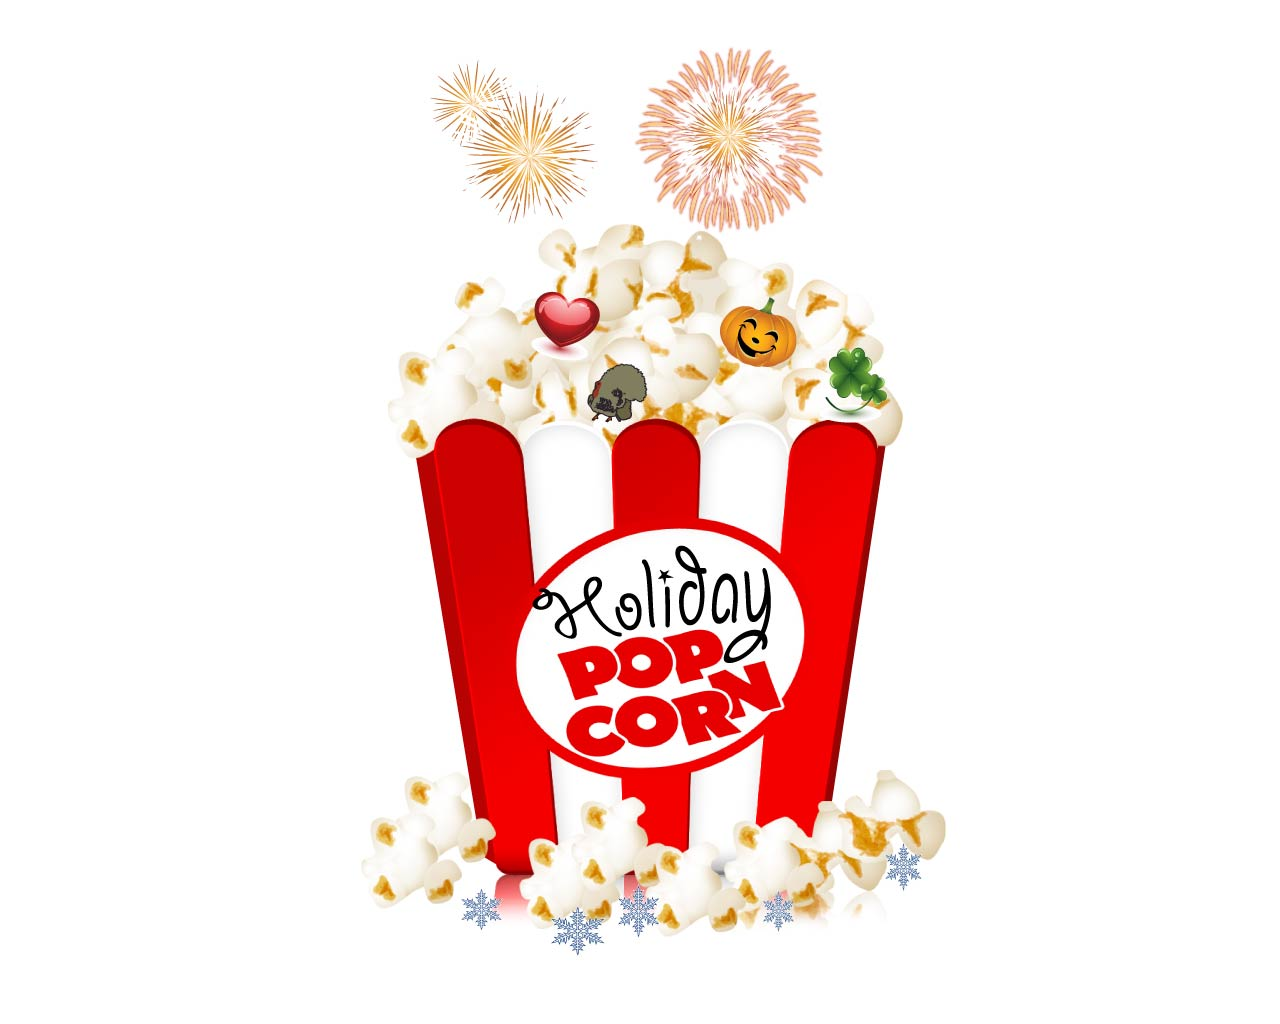 Logo Design by Saunter - Entry No. 12 in the Logo Design Contest Holiday Popcorn.